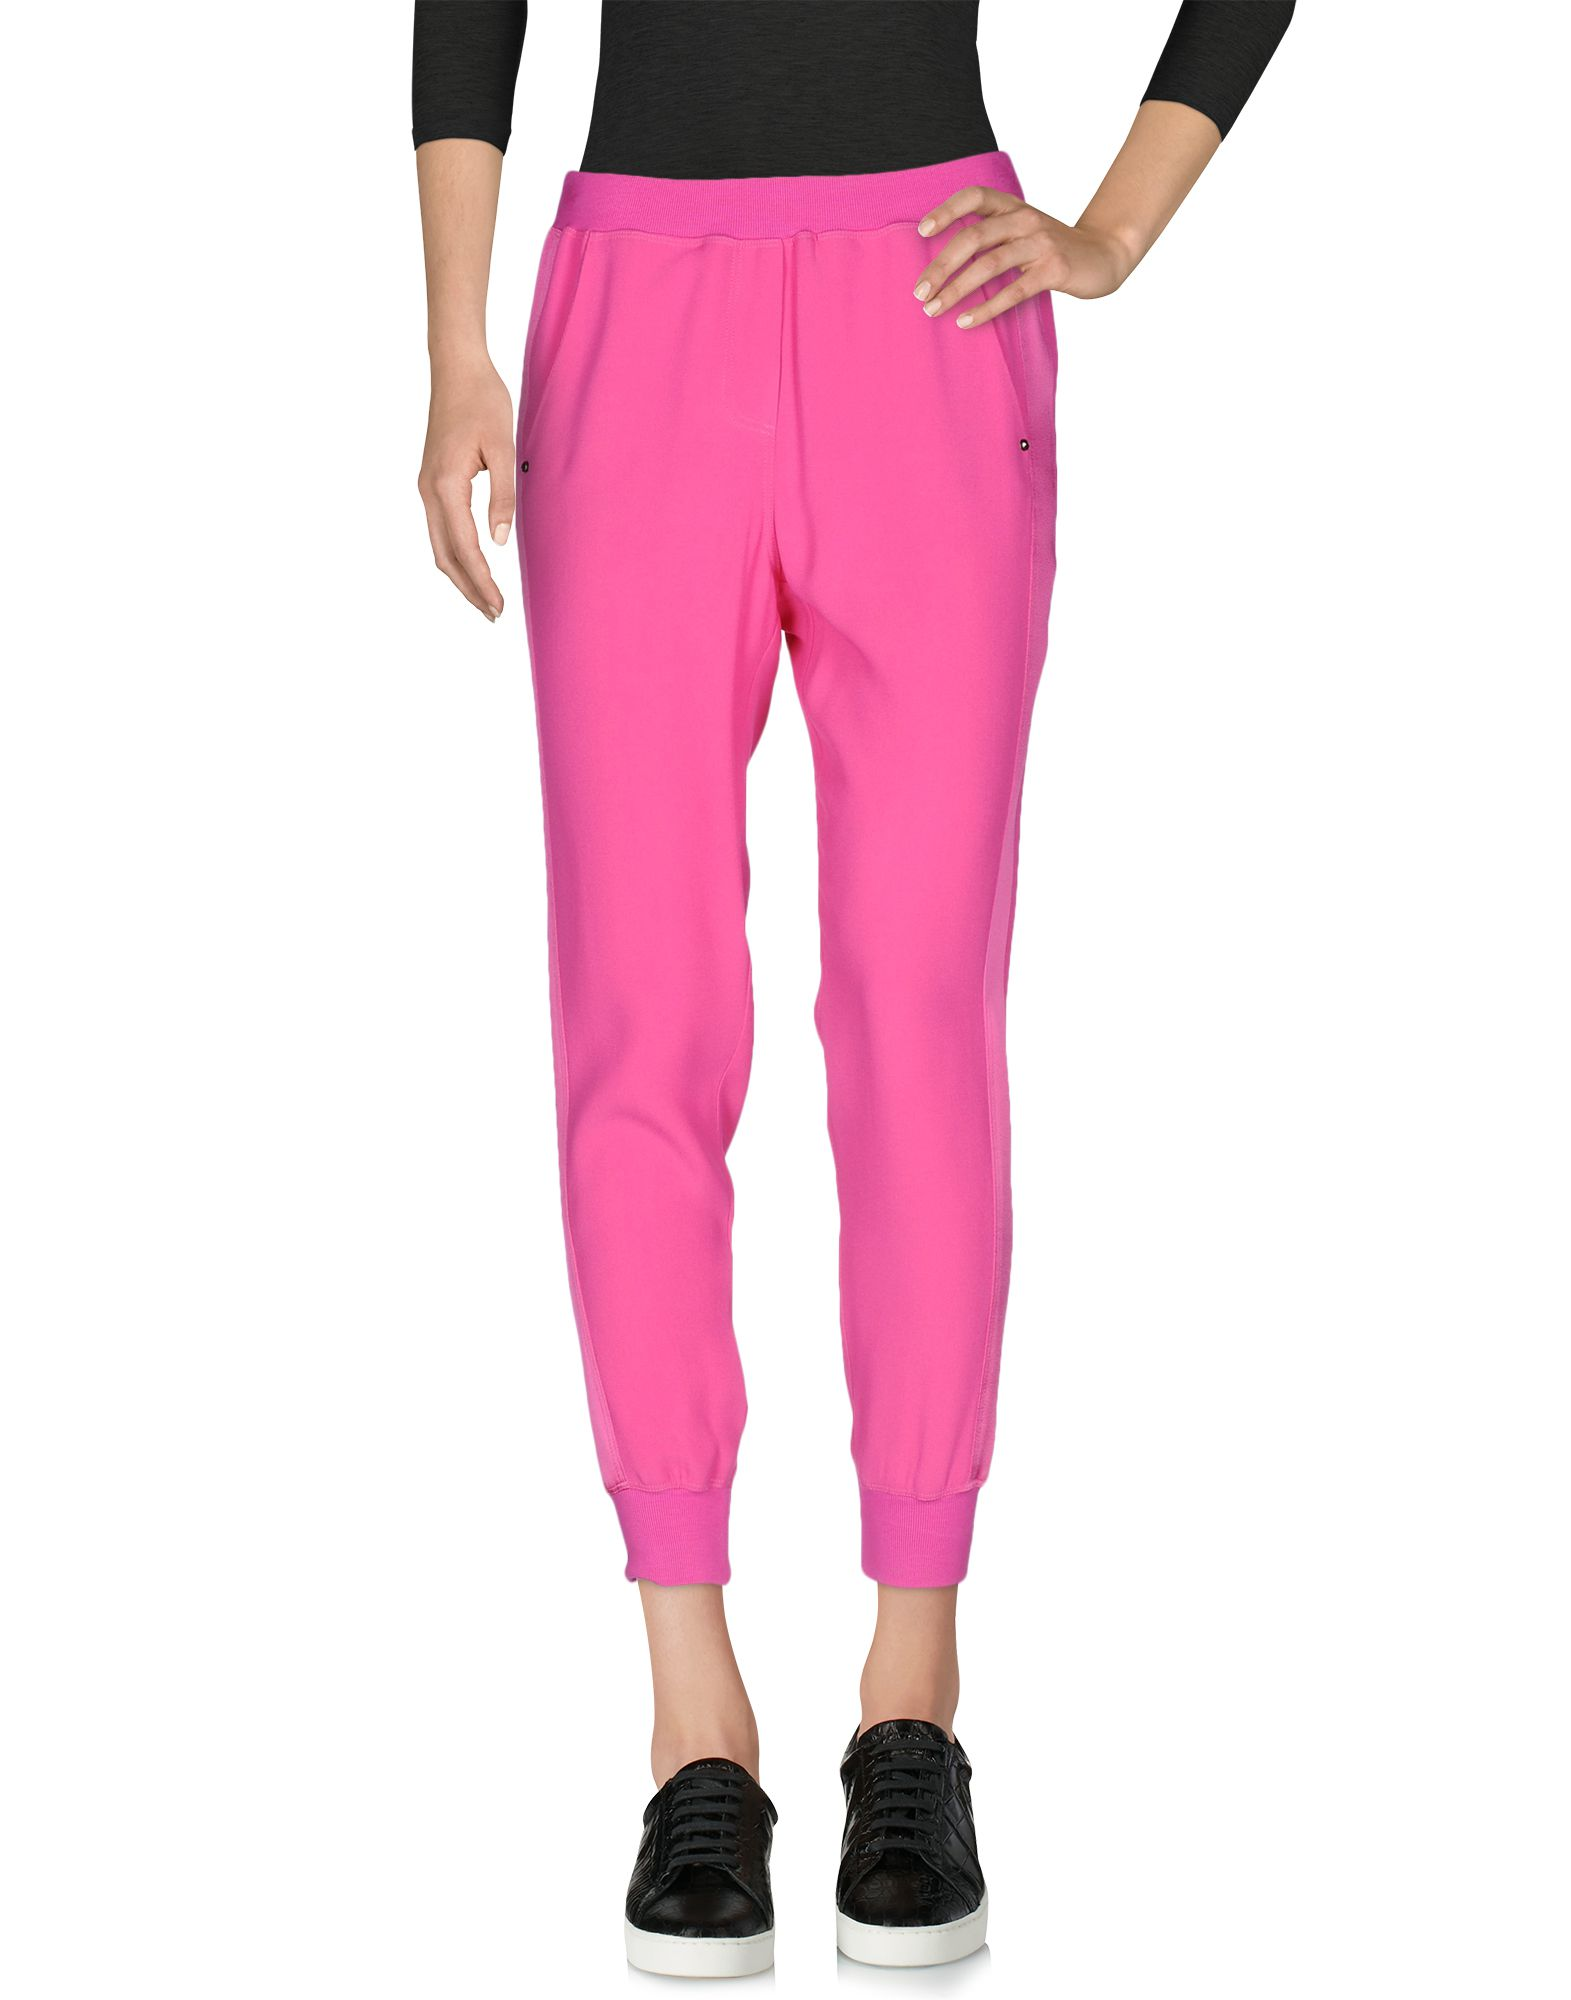 Pantalone Vdp Club Donna - Acquista online su